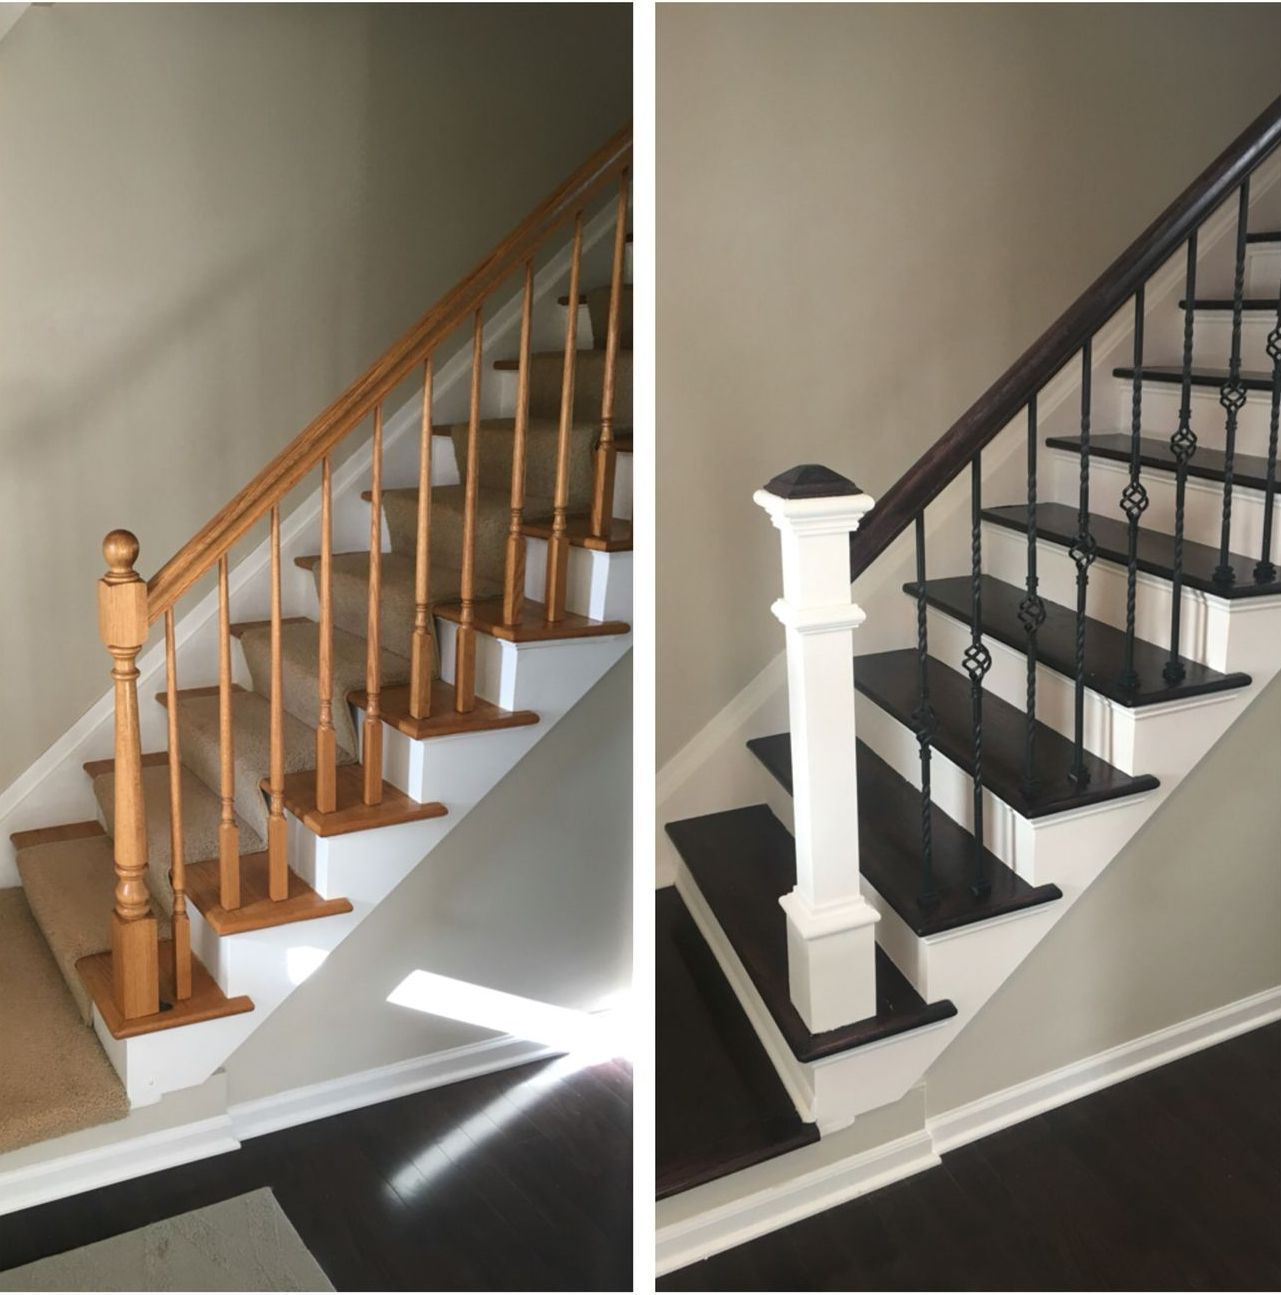 Creative Diy Tips For Decorating Your Stairs: 32 Incredible DIY Staircase Makeover Ideas To Refresh The